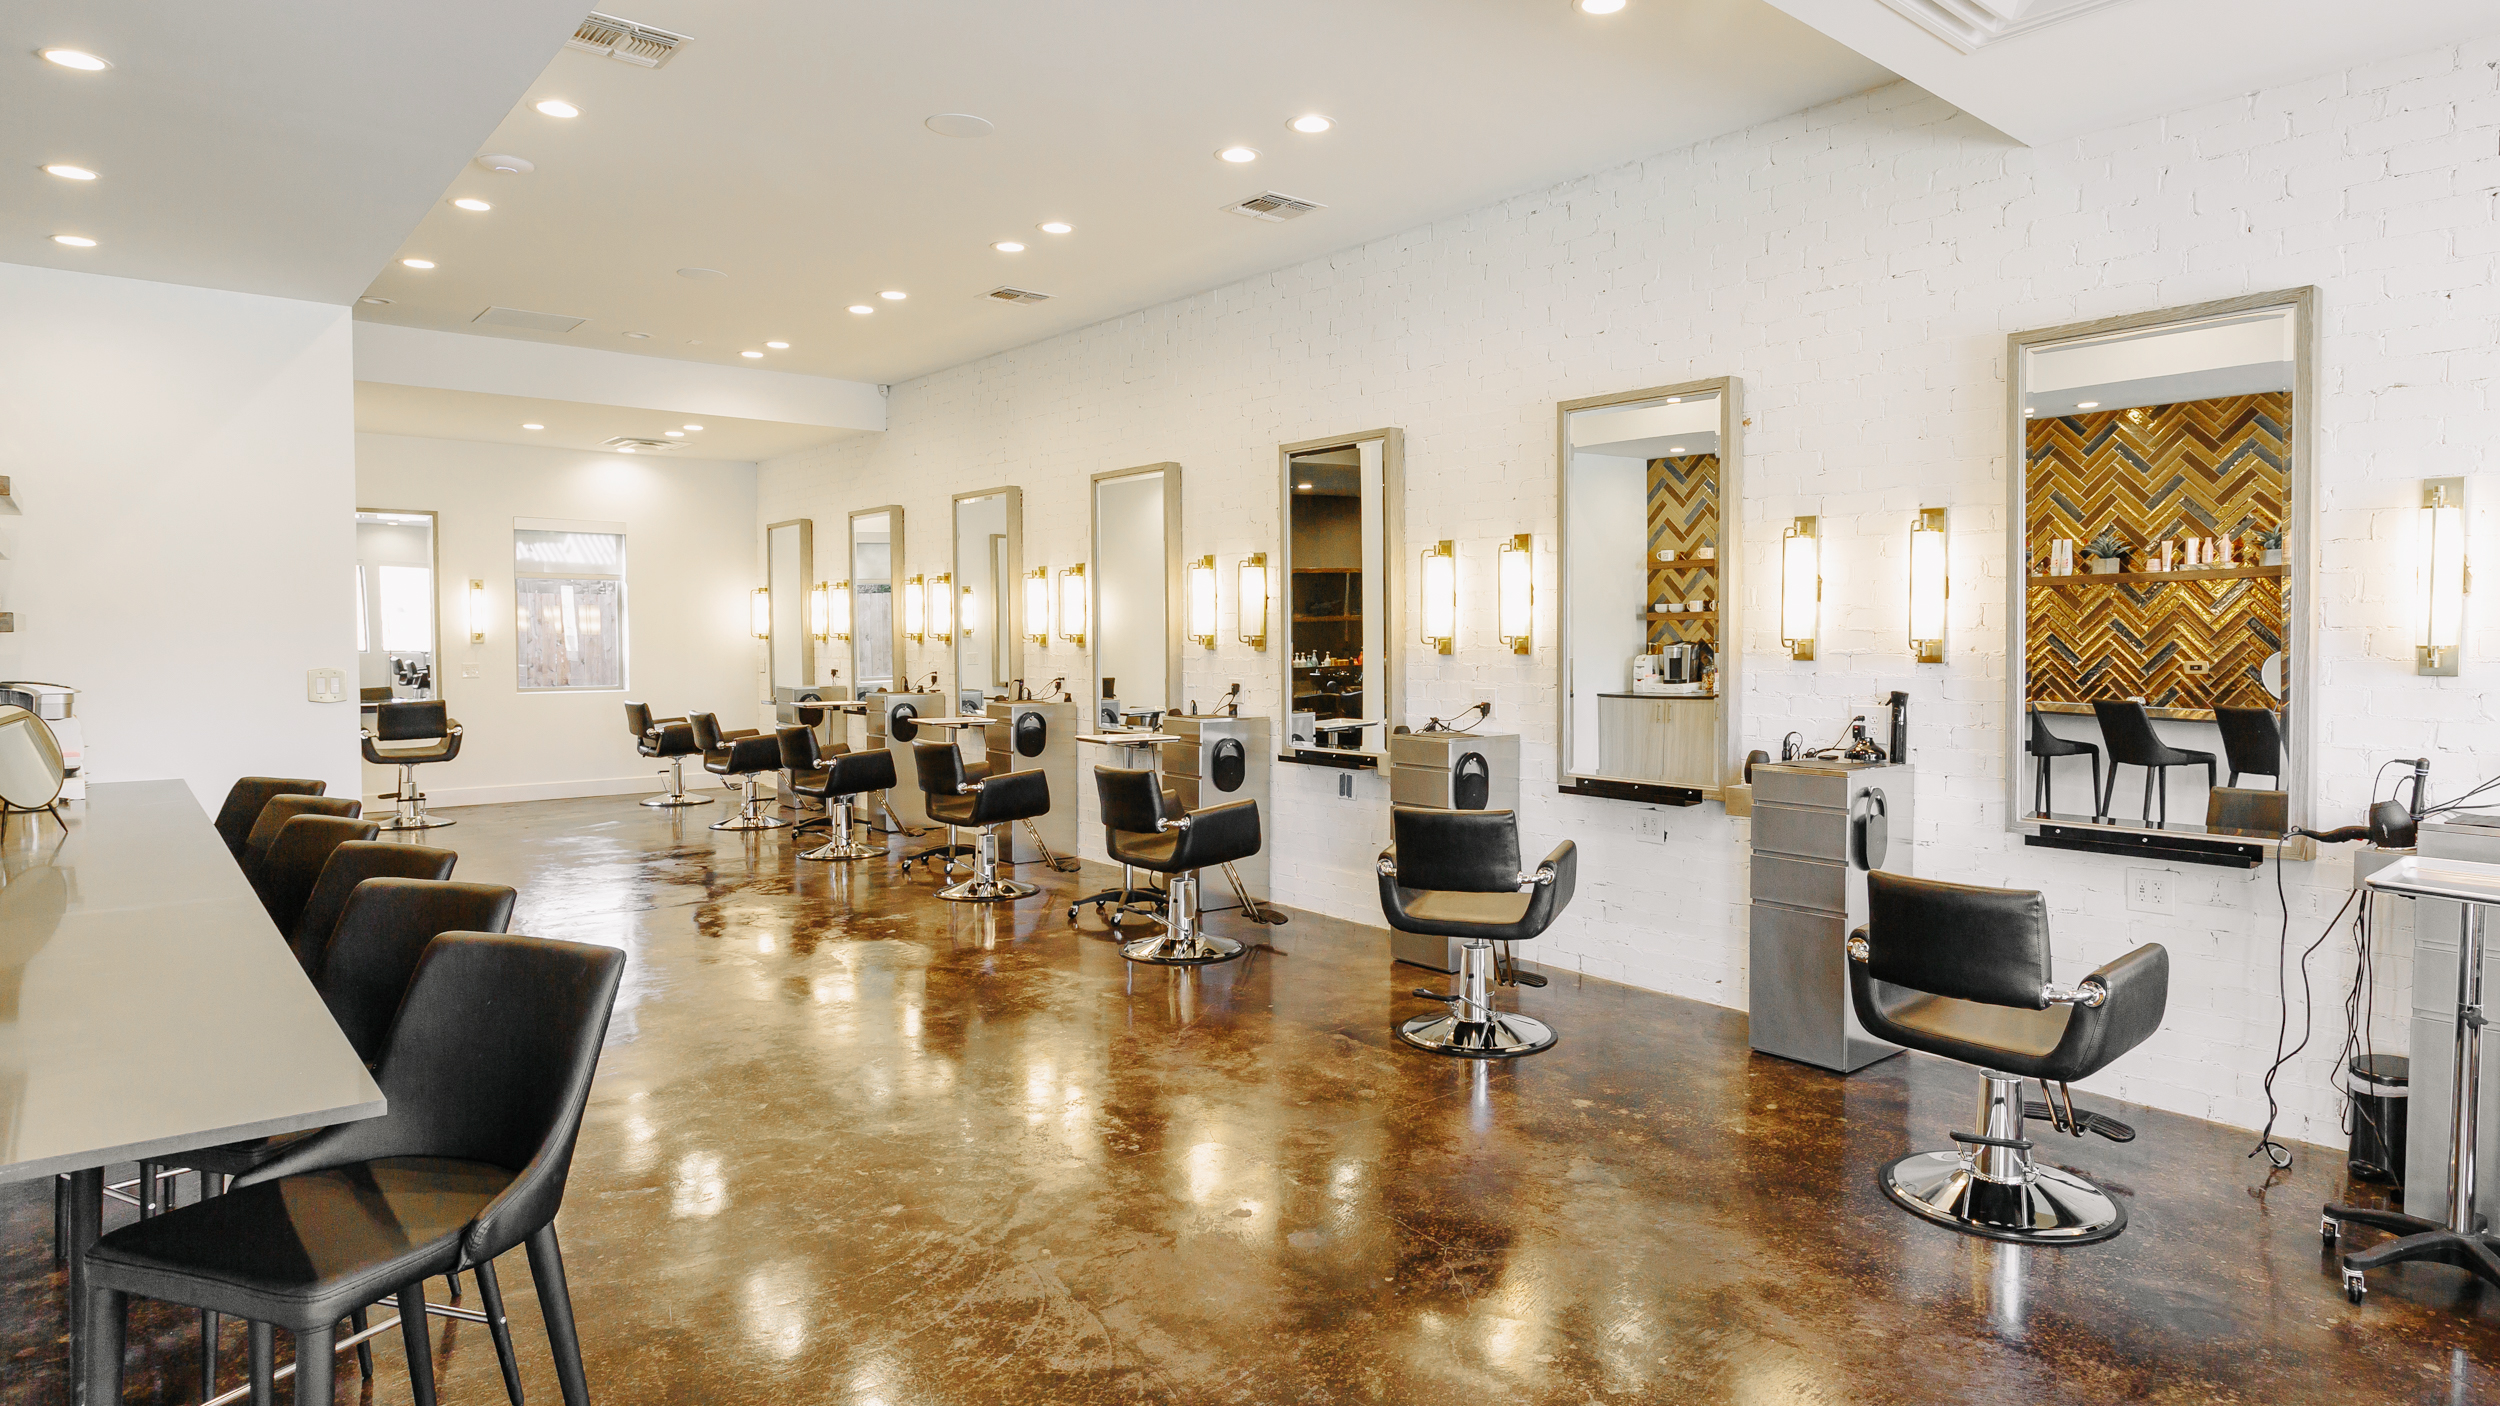 Beauty Hive Salon - Commercial Finish Out + Interior Design